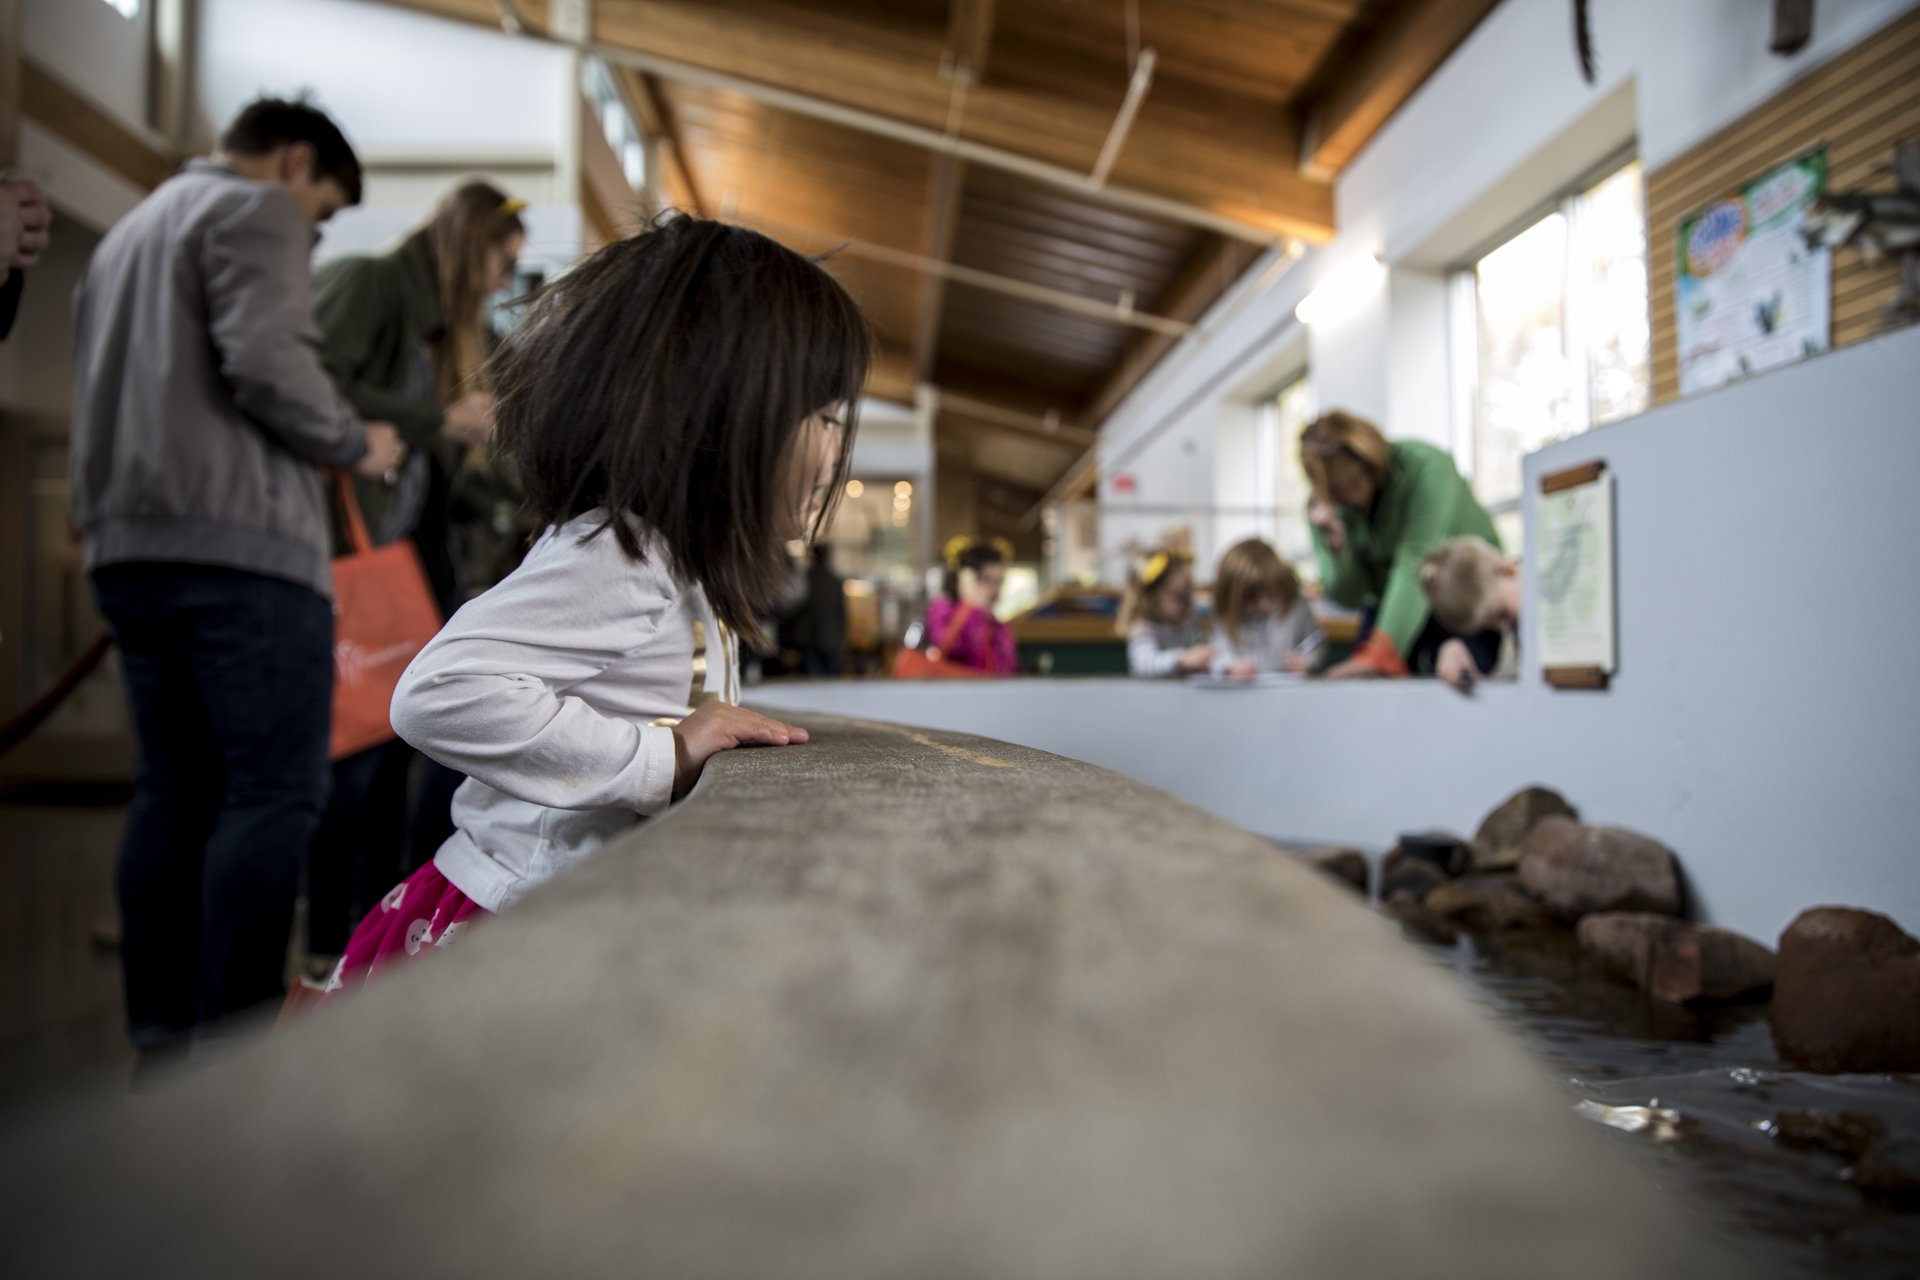 Girl at Discovery Center looking at stream indoors